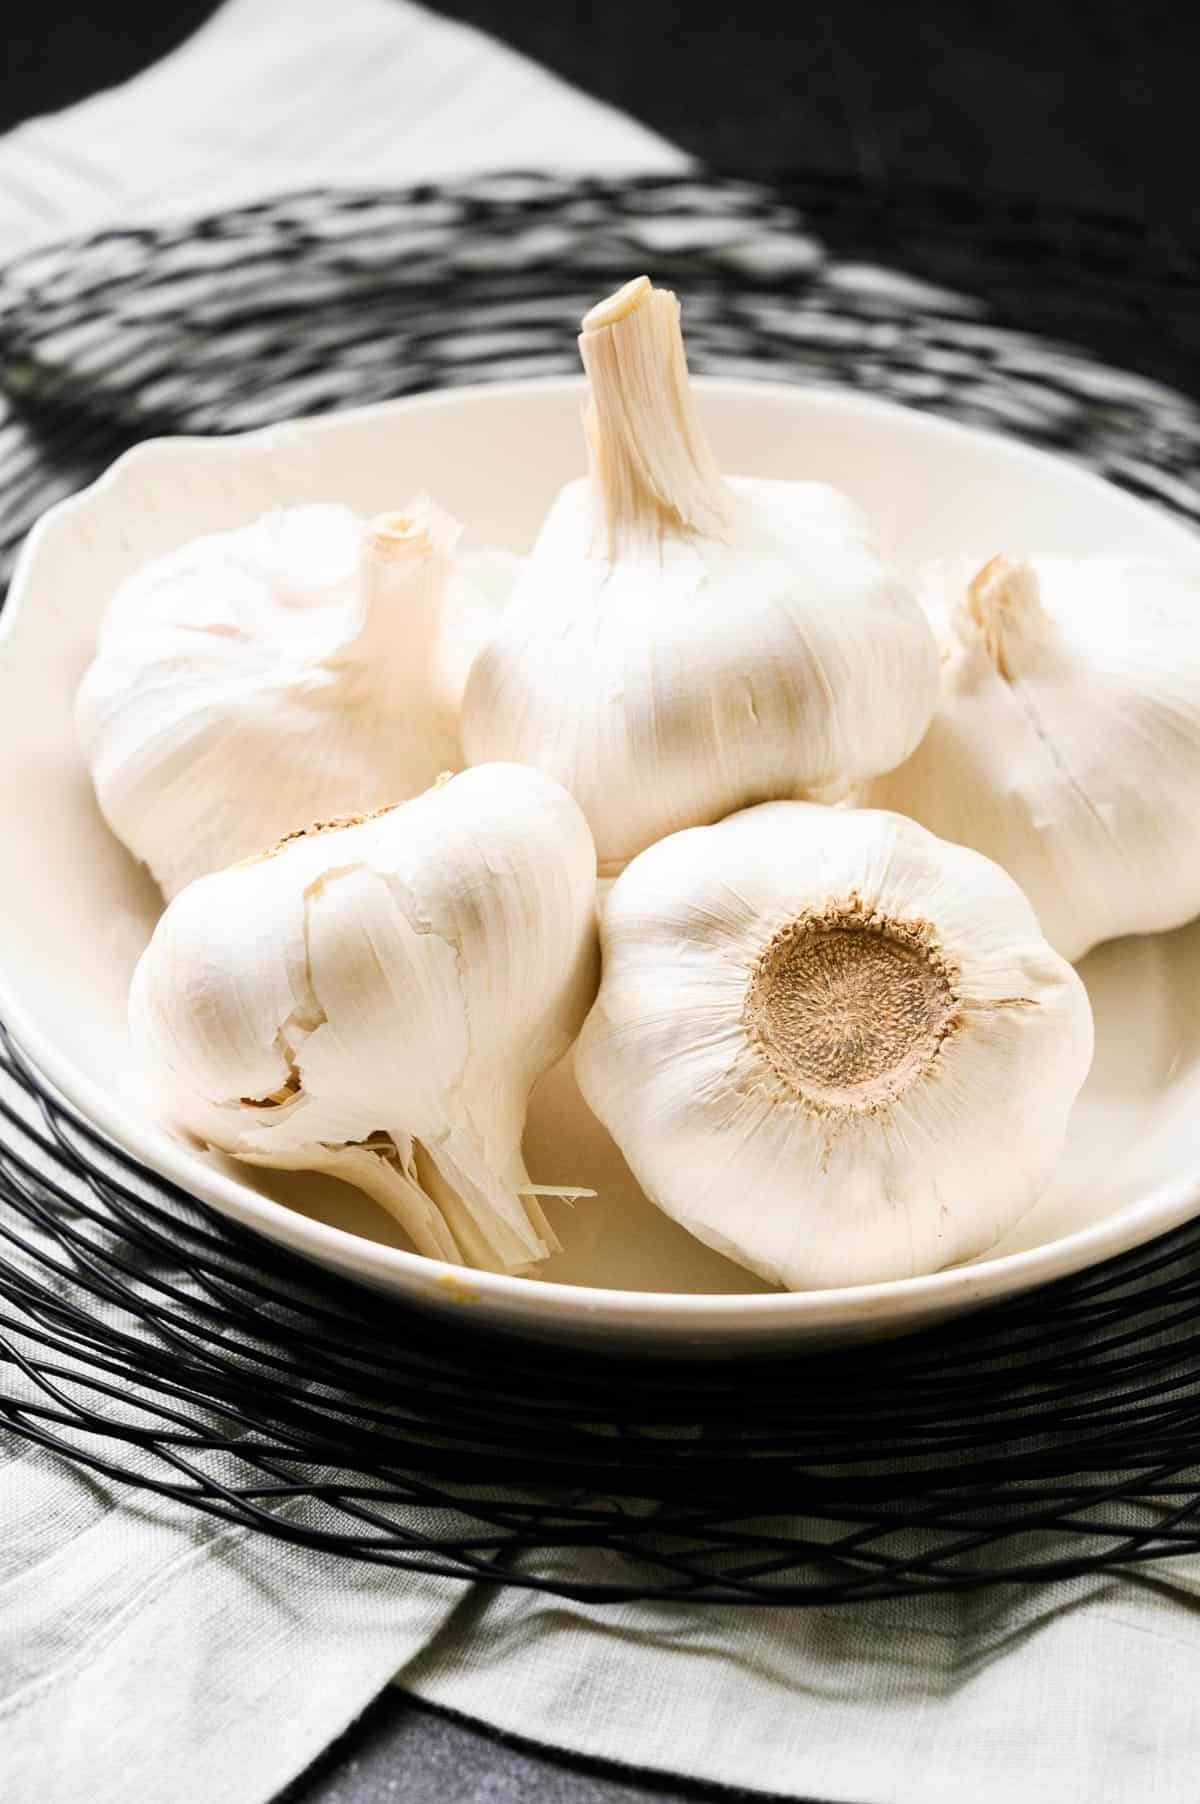 heads of garlic on a white plate with a black wire charger